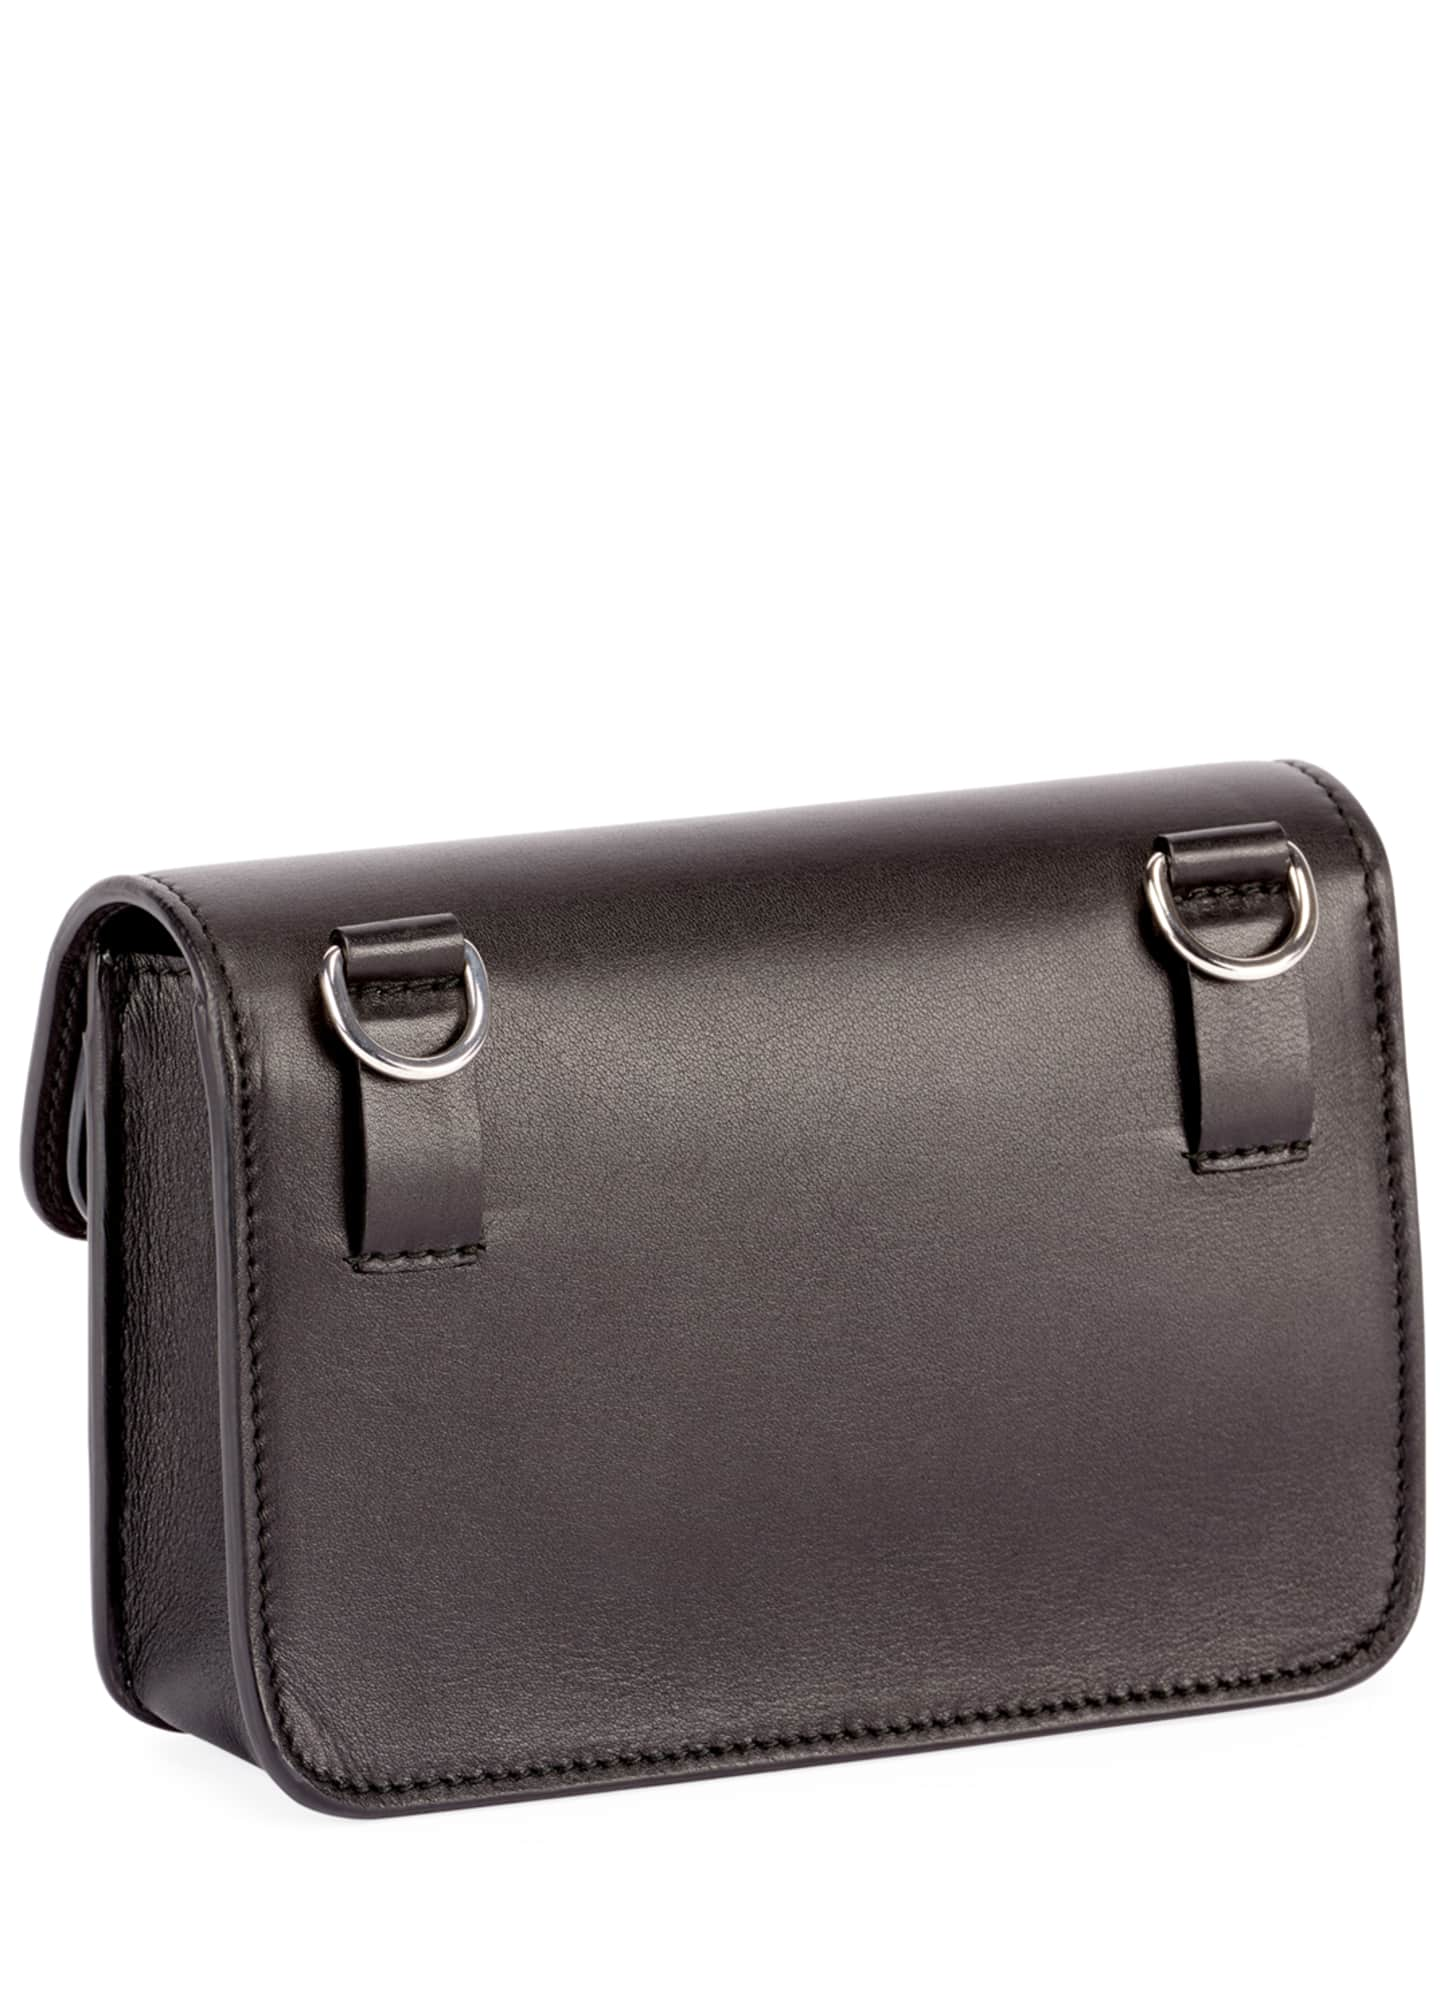 Image 4 of 4: PS11 Smooth Leather Belt Bag